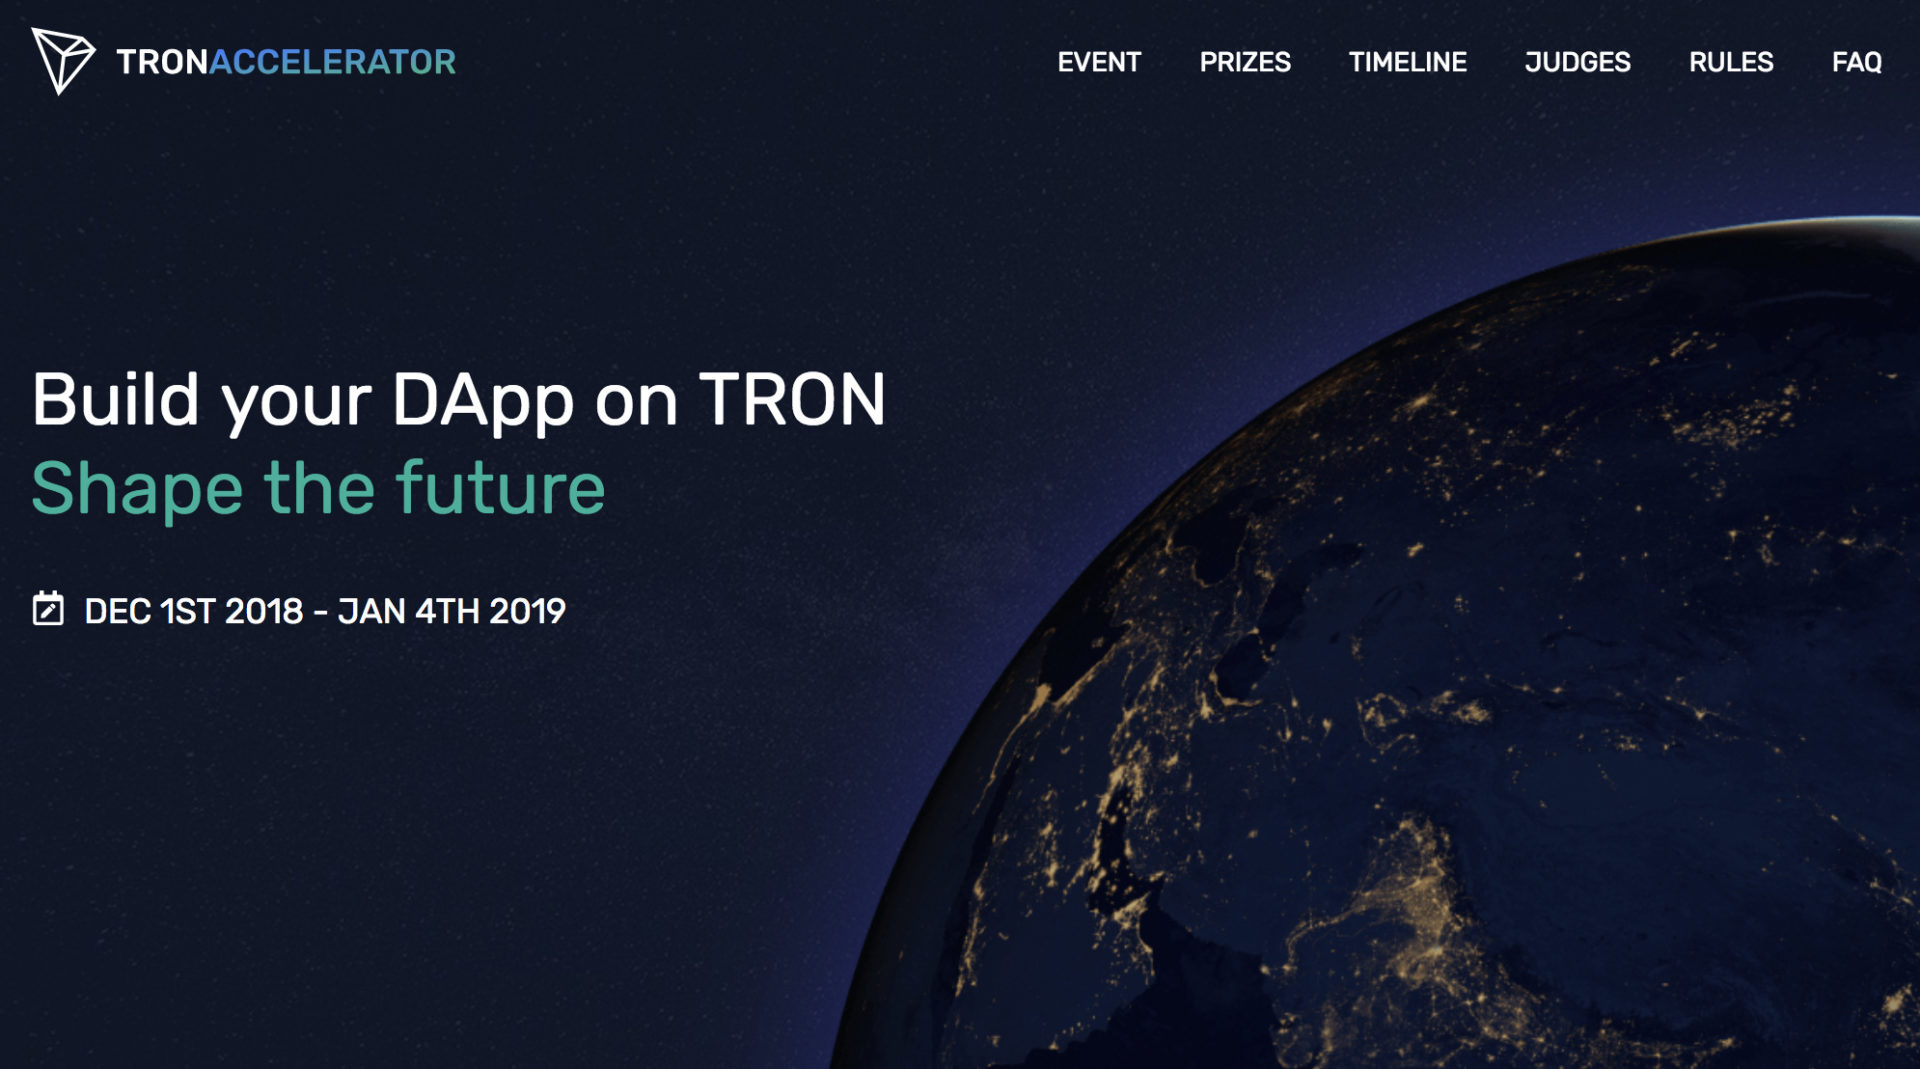 Tron (TRX) Accused of Price Pump In Accelerator Competition Uproar 13